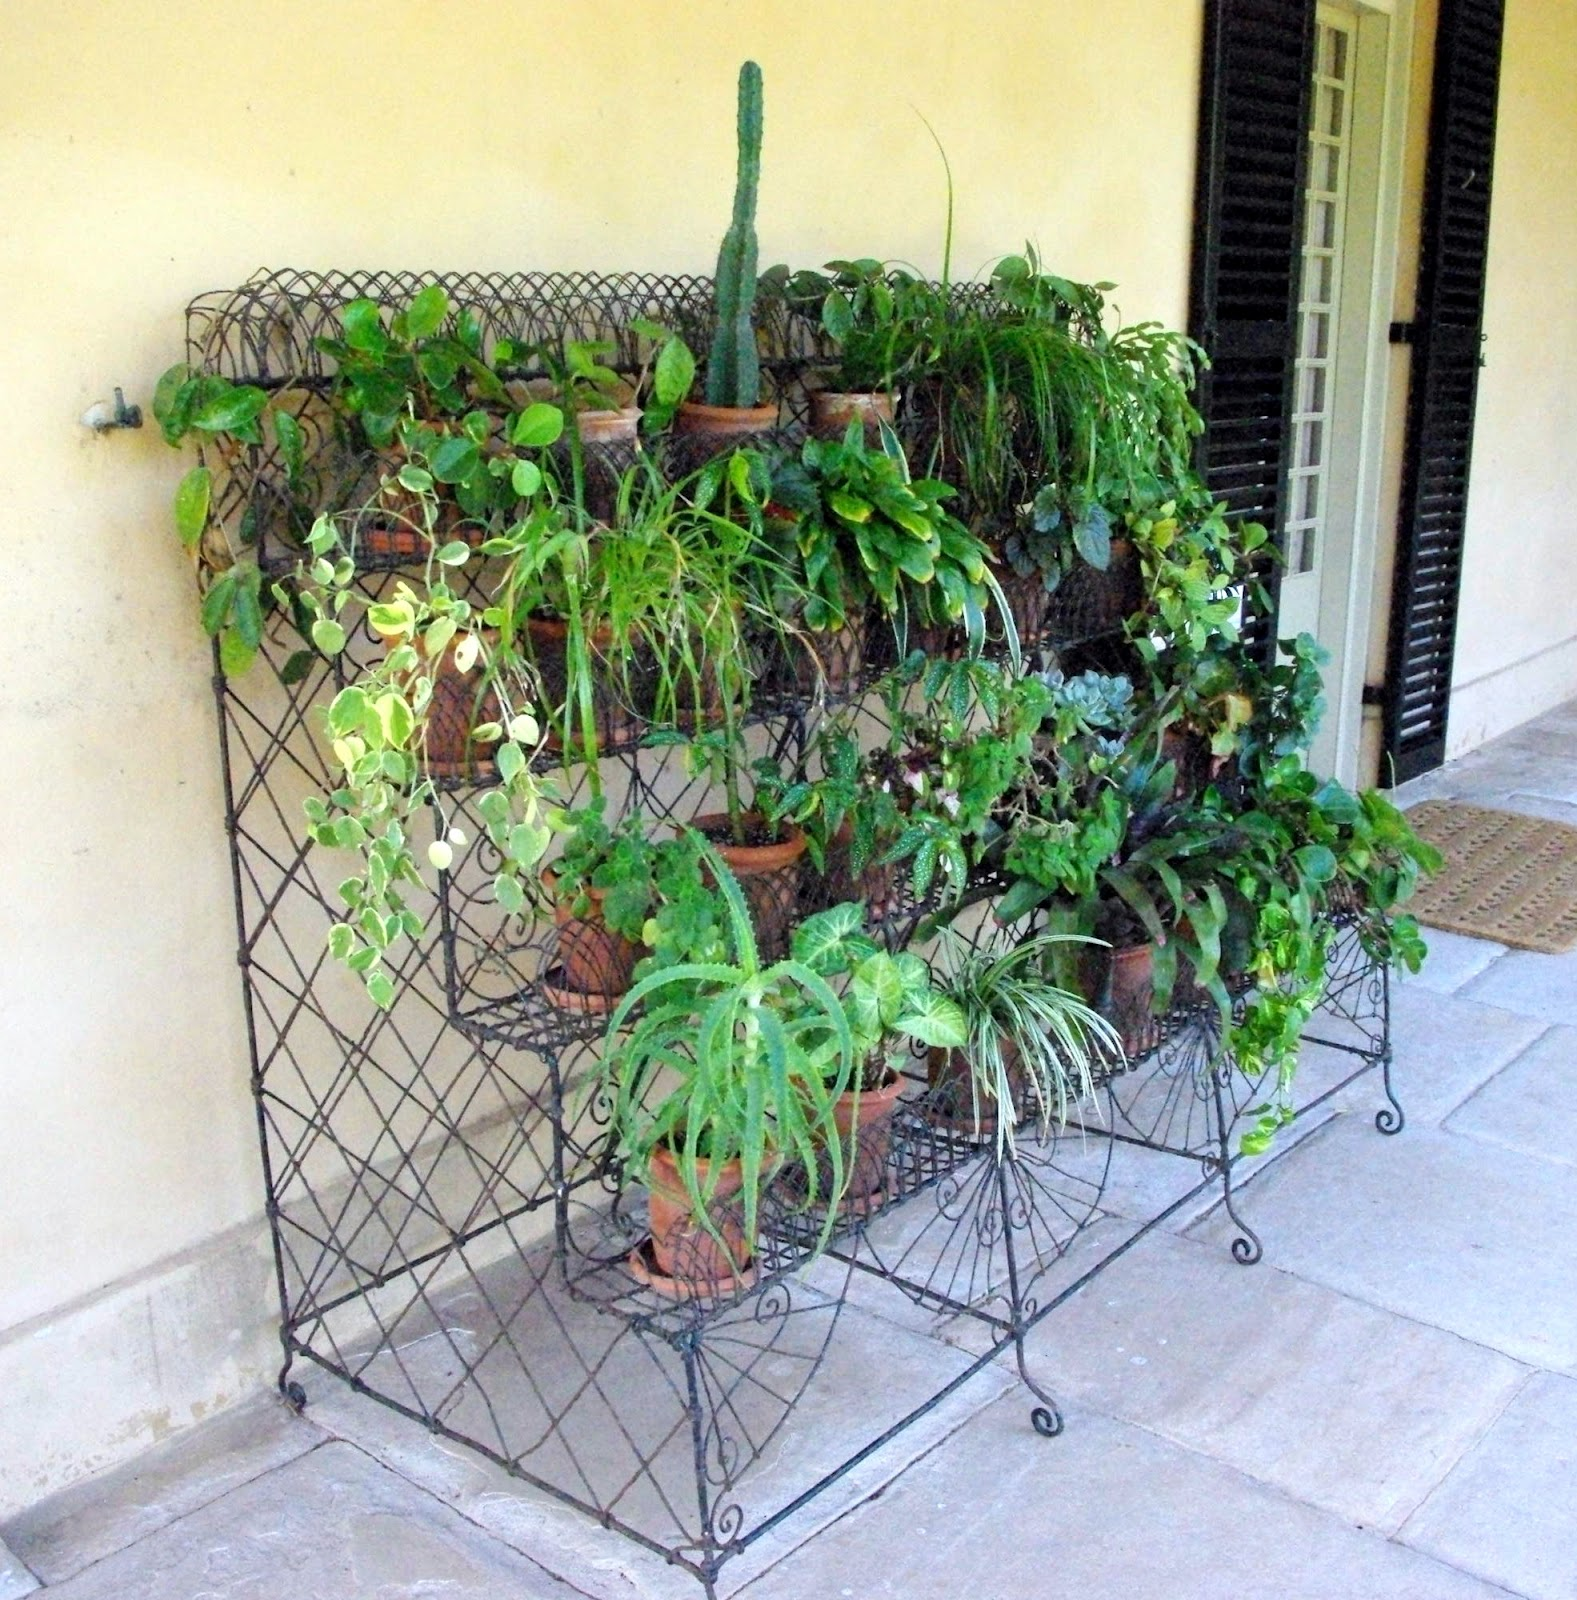 Marvelous Garden Stands For Plants #16: A Beautiful Example Of An Original Wire Work Garden Stand Complete With  Reproduction. Victorian Hand-thrown Terracotta Pots And Popular 19th  Century Plants